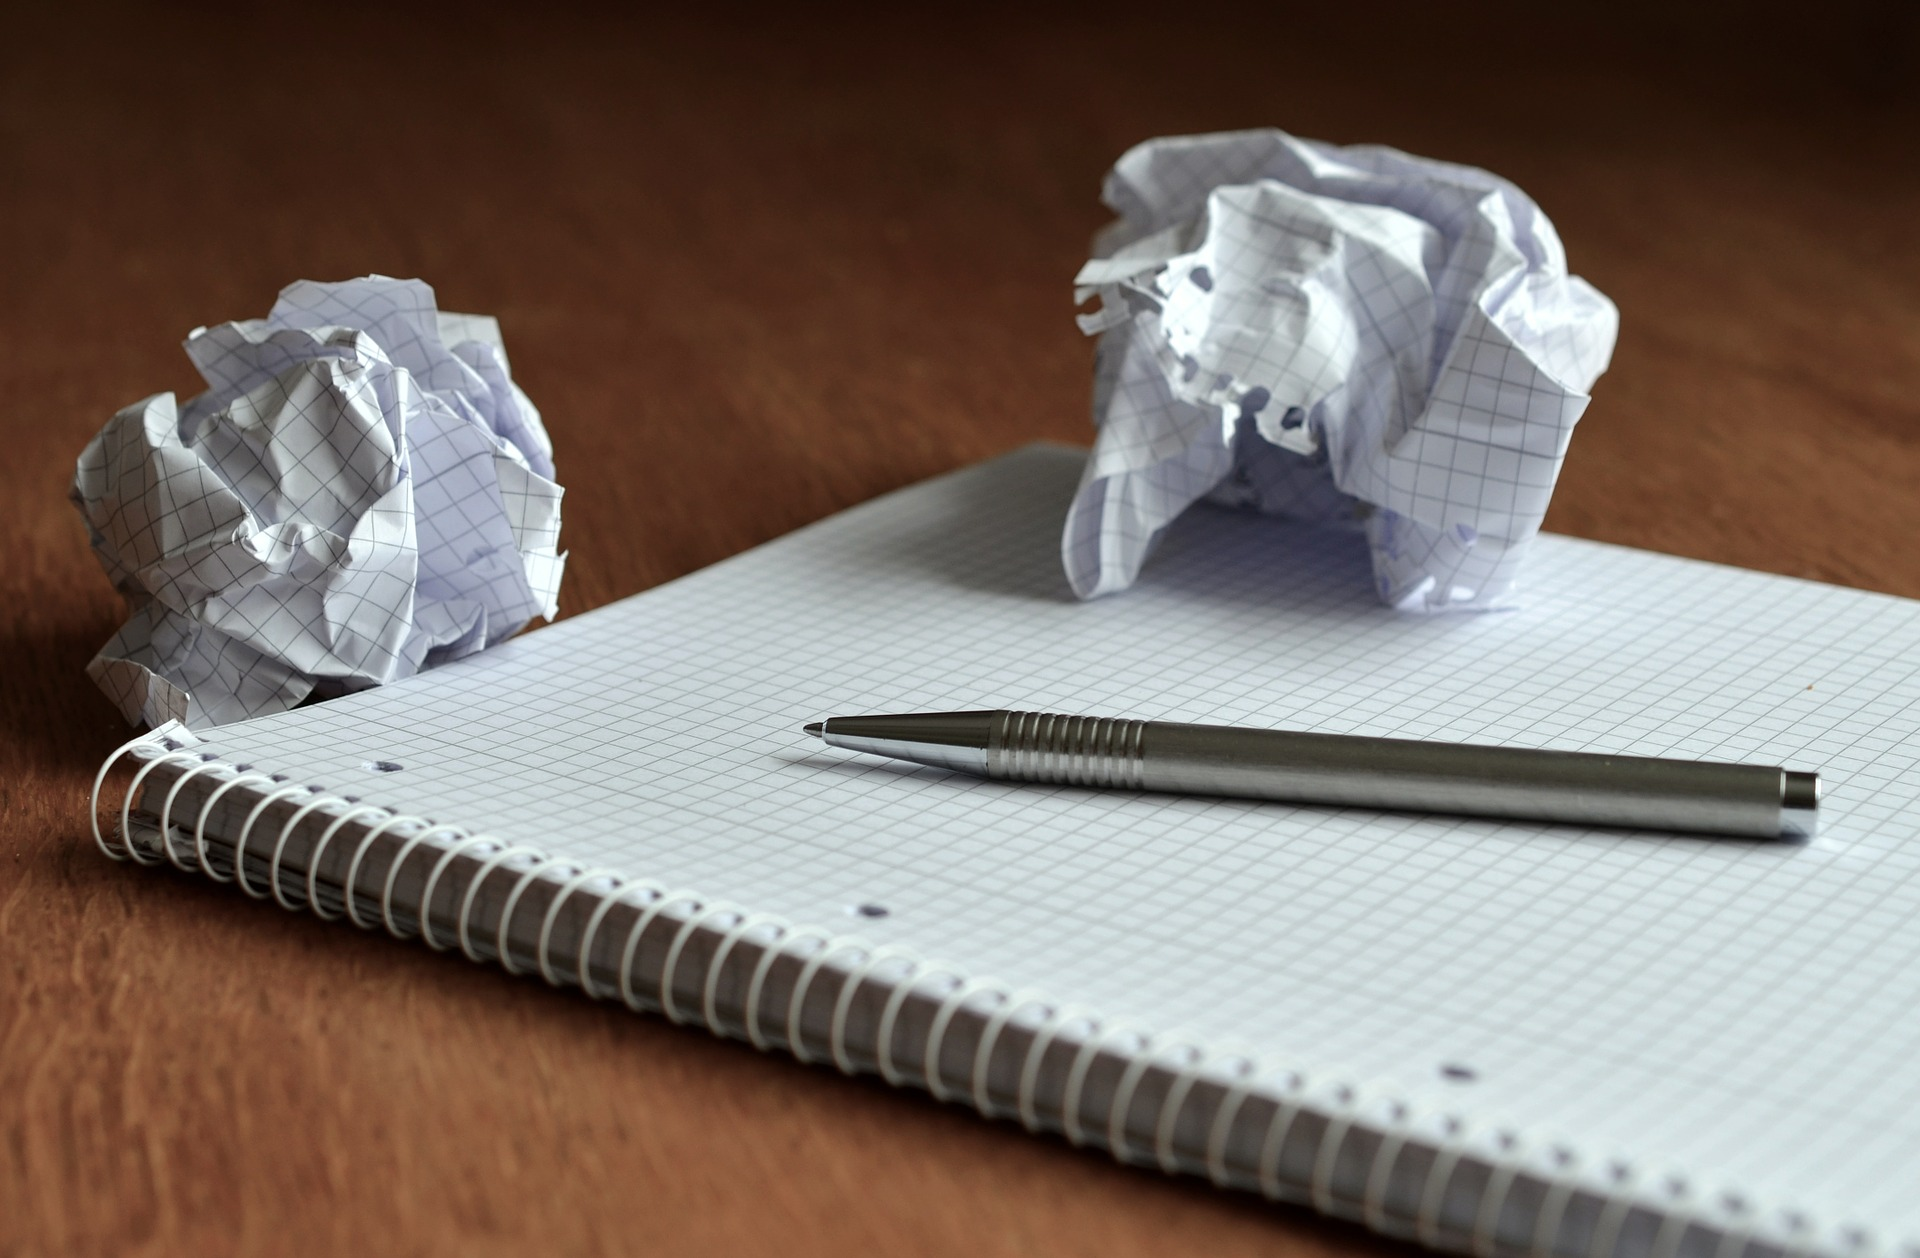 A Notebook With Two Crumpled Balls Of Paper On Top.